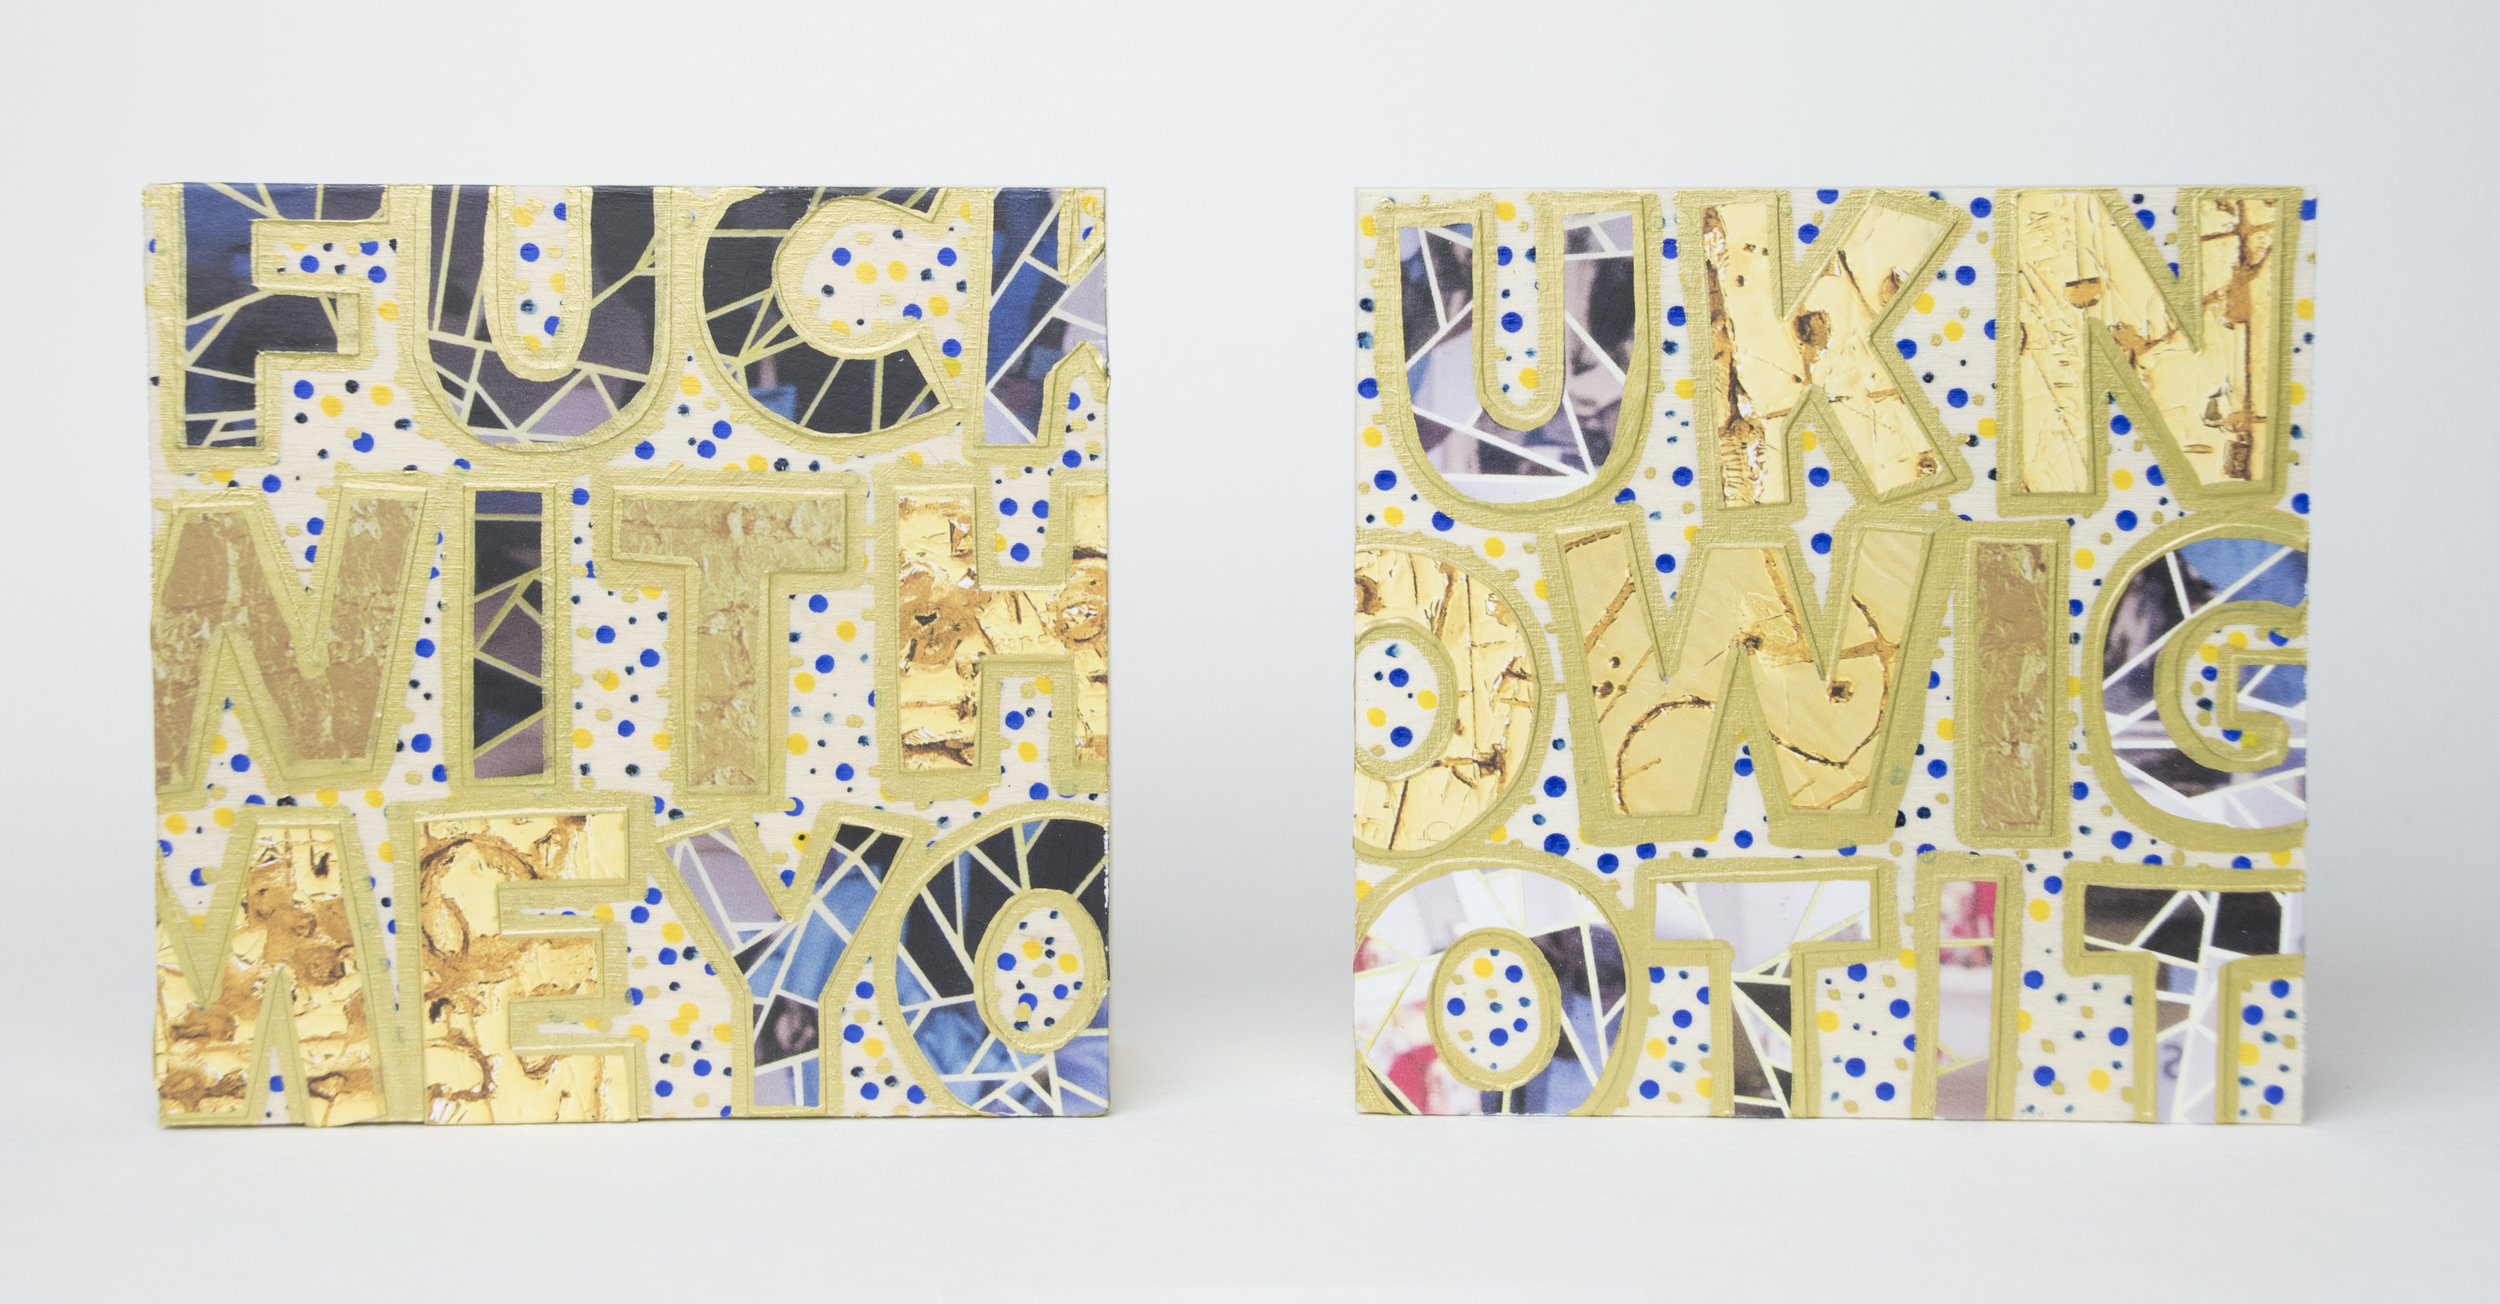 FuckwithmeyouknowIgotit (for Carlos) , 2016 Acrylic, enamel, gouache and catalog on wood Diptych, 4 x 4 x 1 5/8 inches each